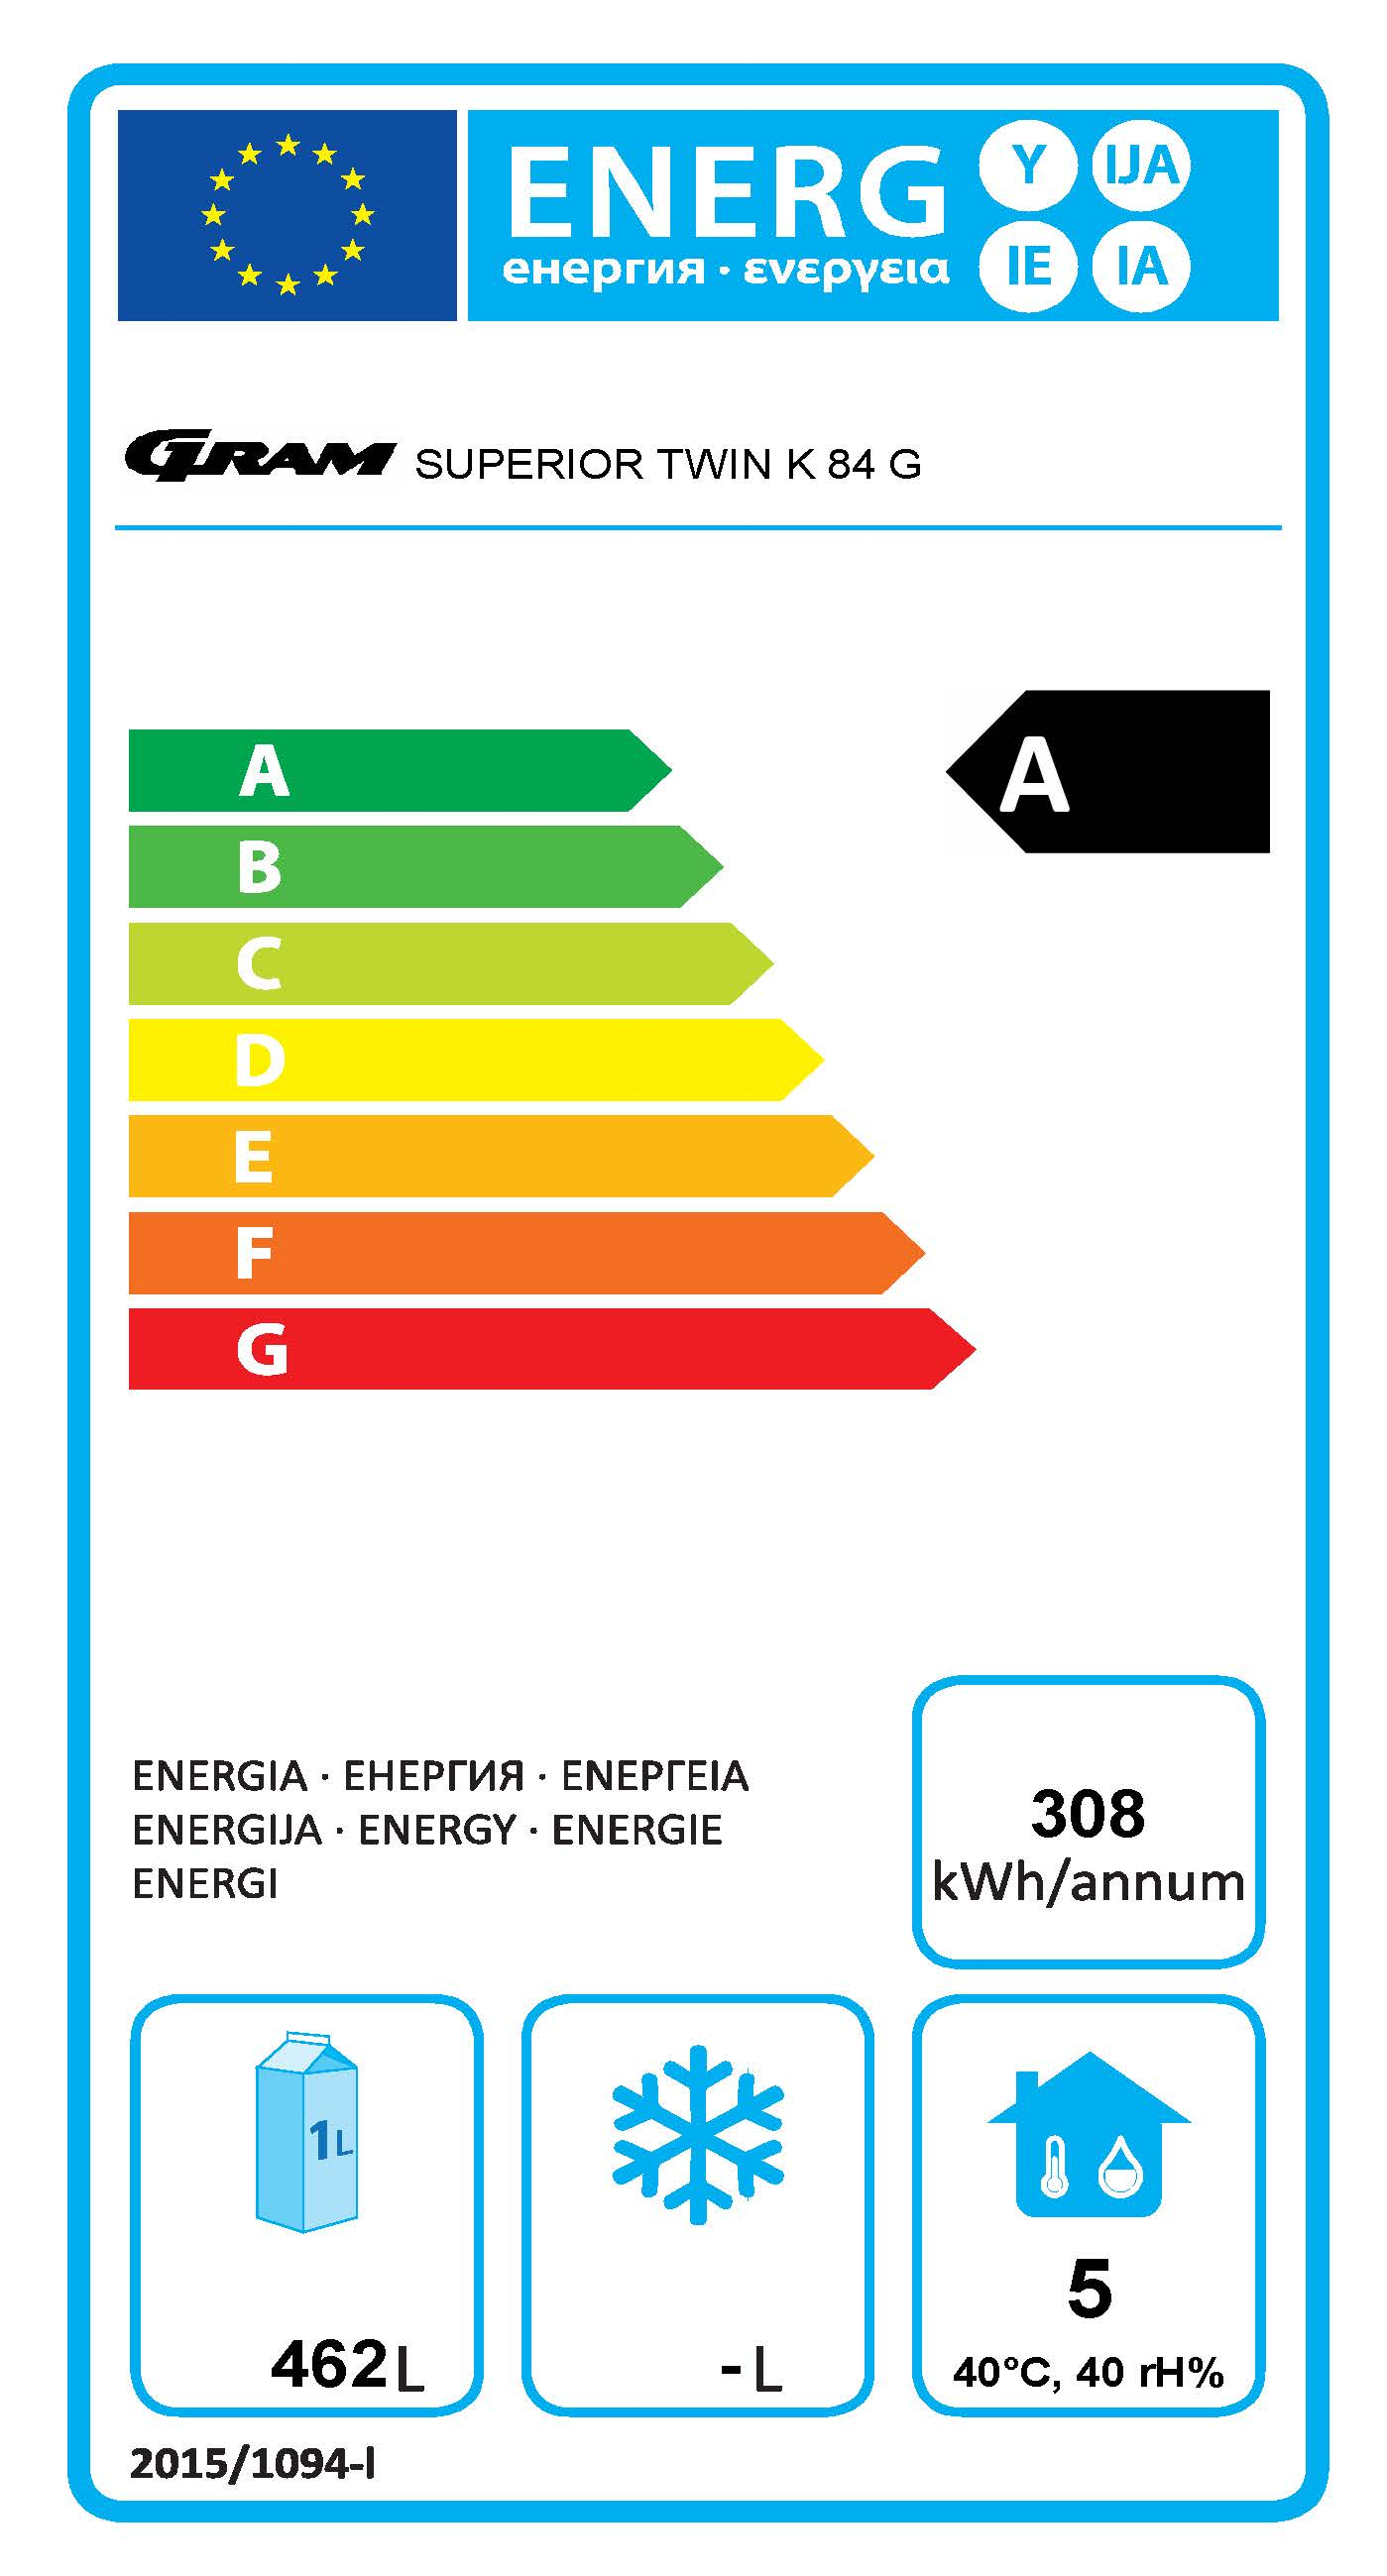 SUPERIOR TWIN K 84 RAG C1 4S 2/1 GN Upright Refrigerator  Energy Rating